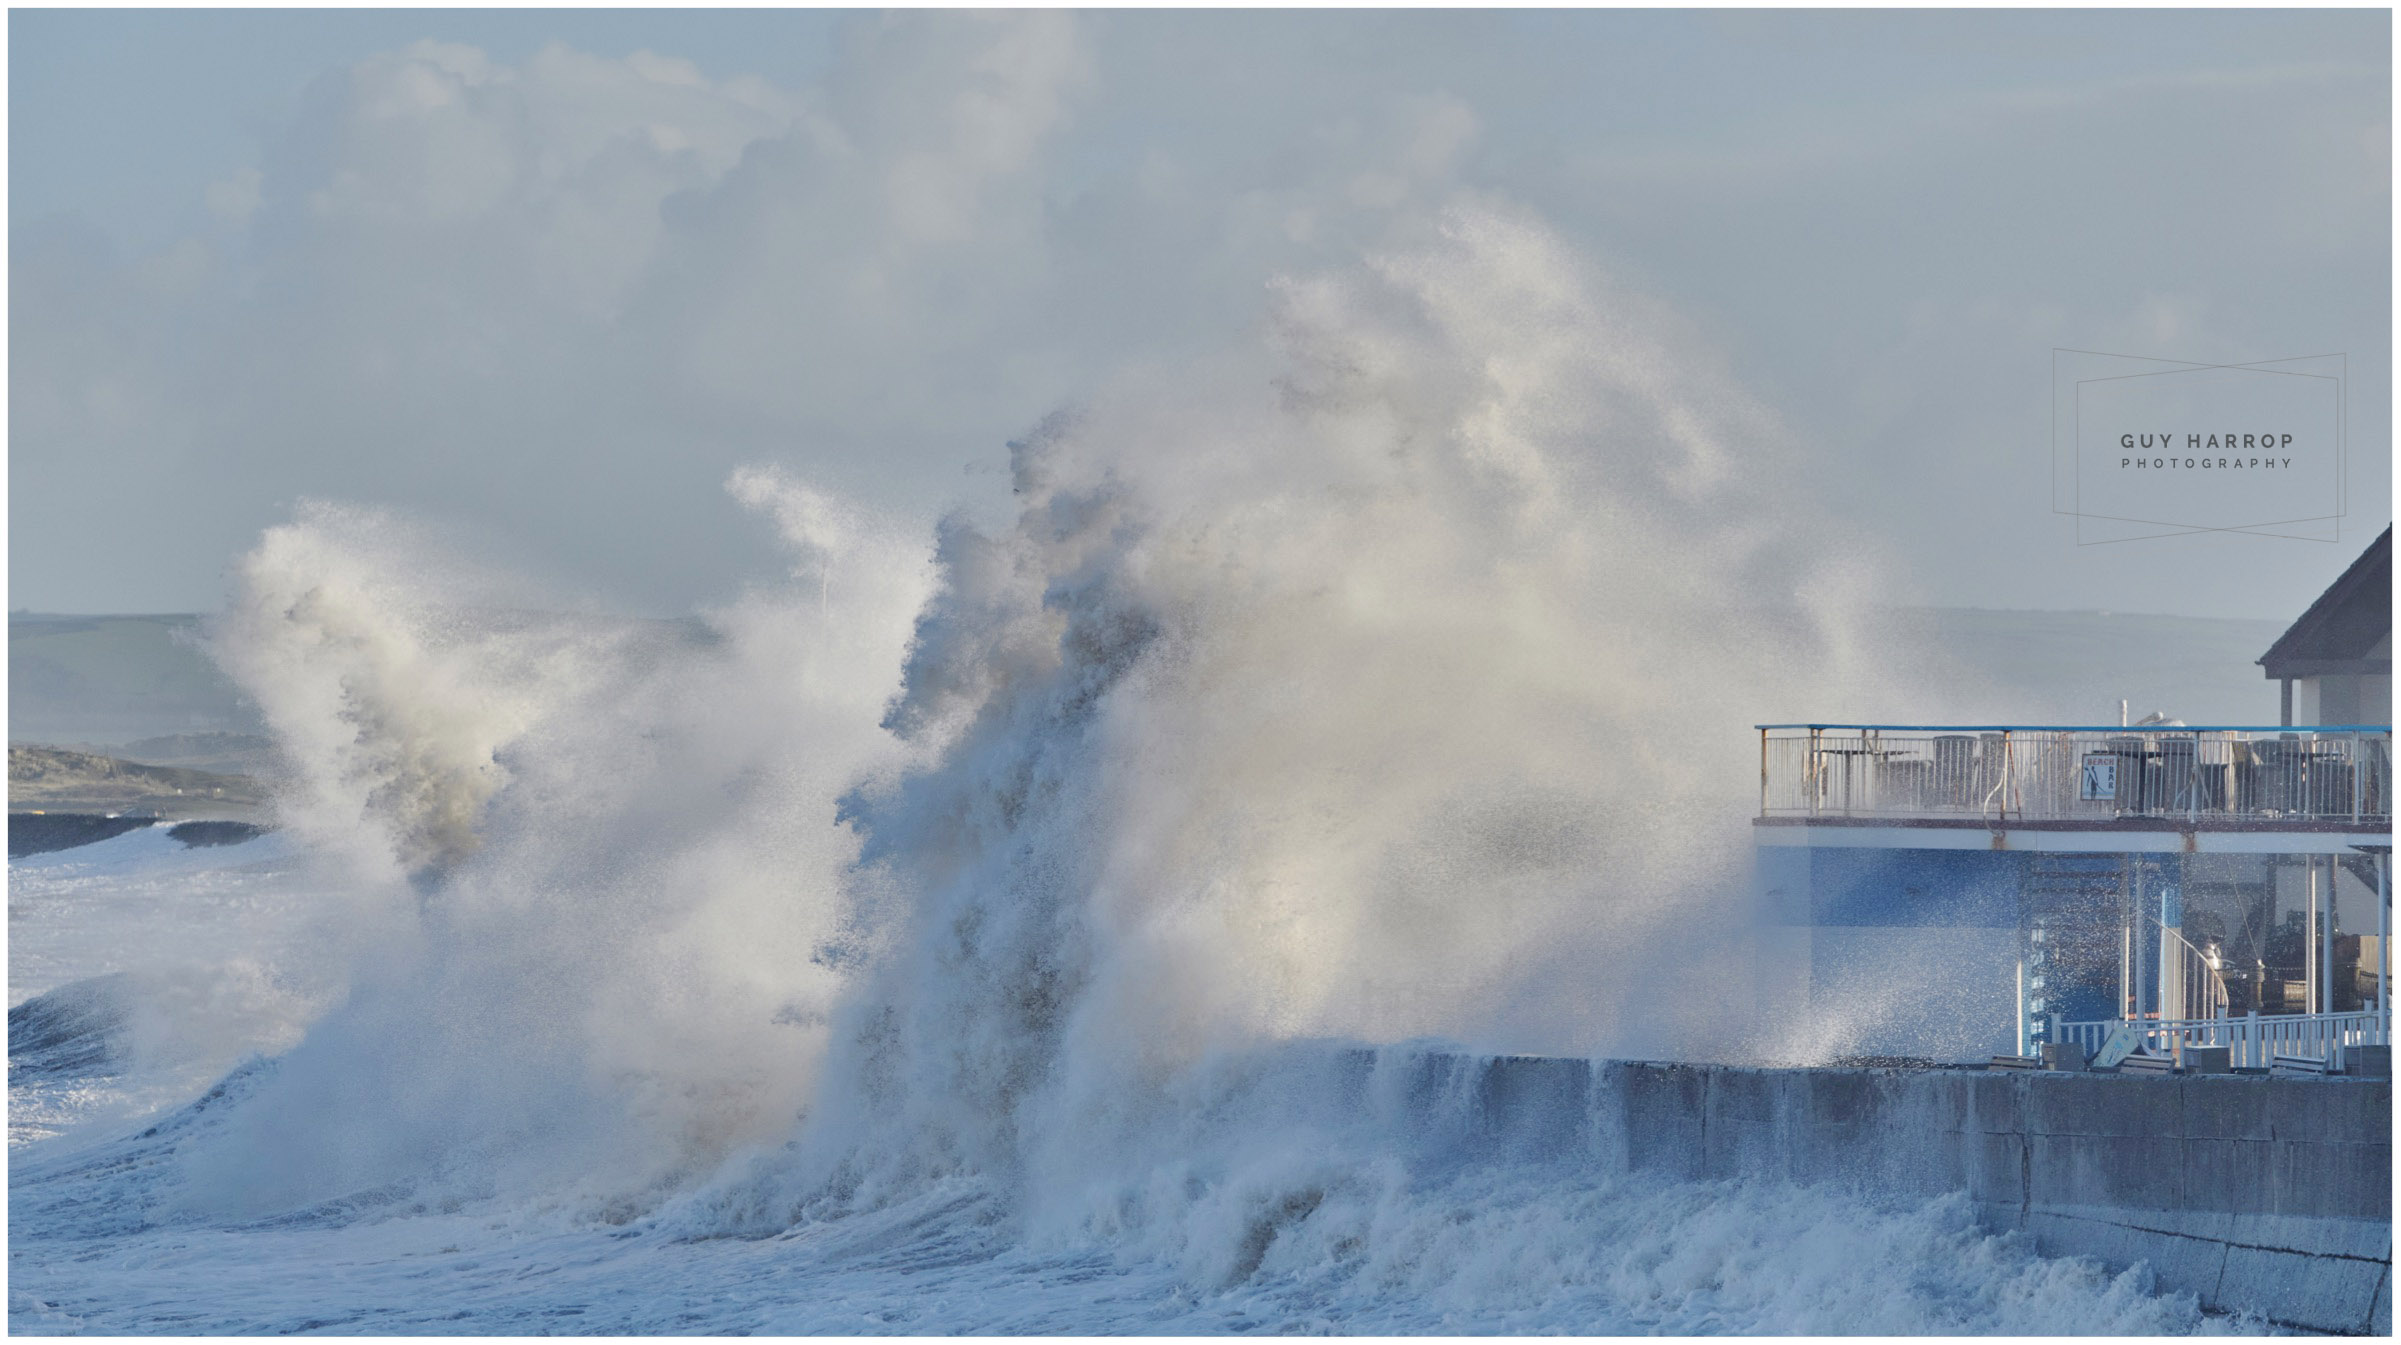 big wave photos south west uk